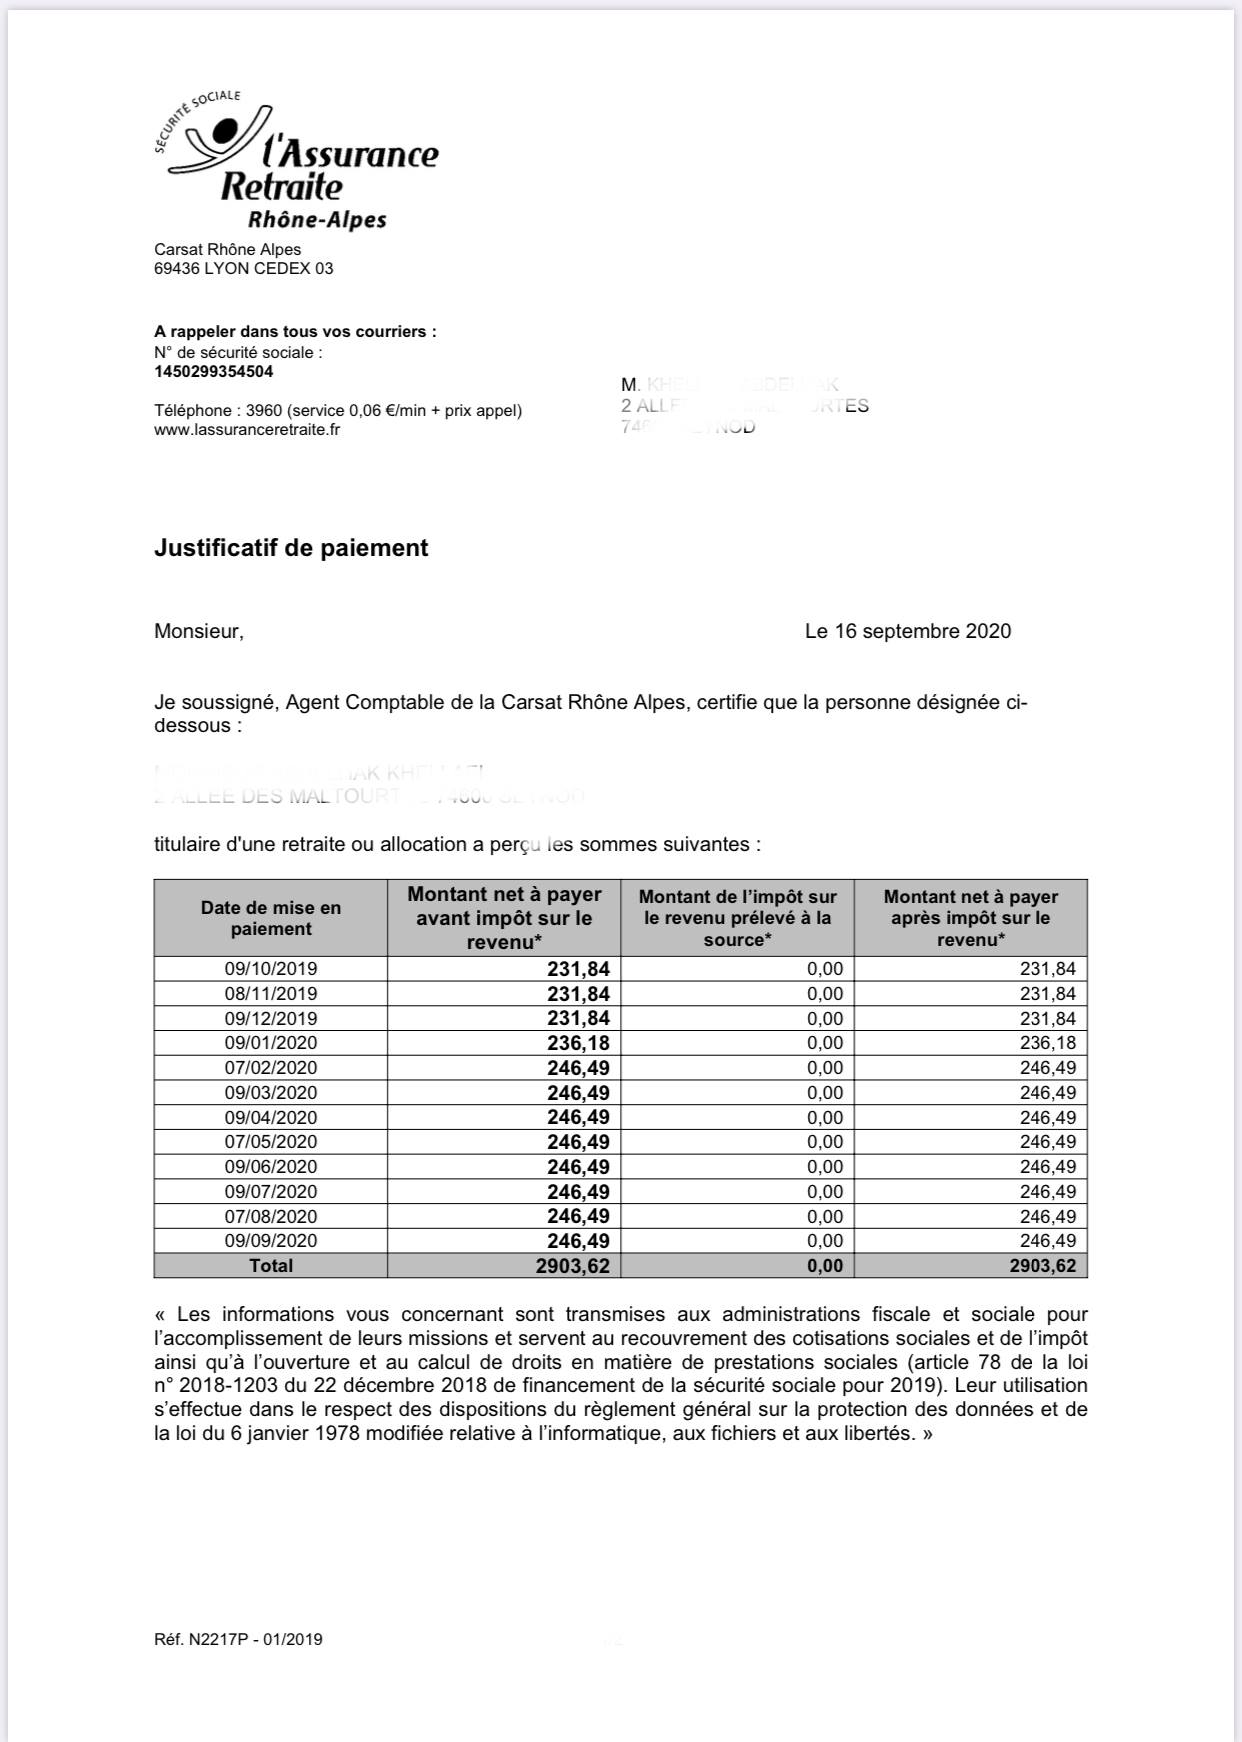 Titre de pension de retraite